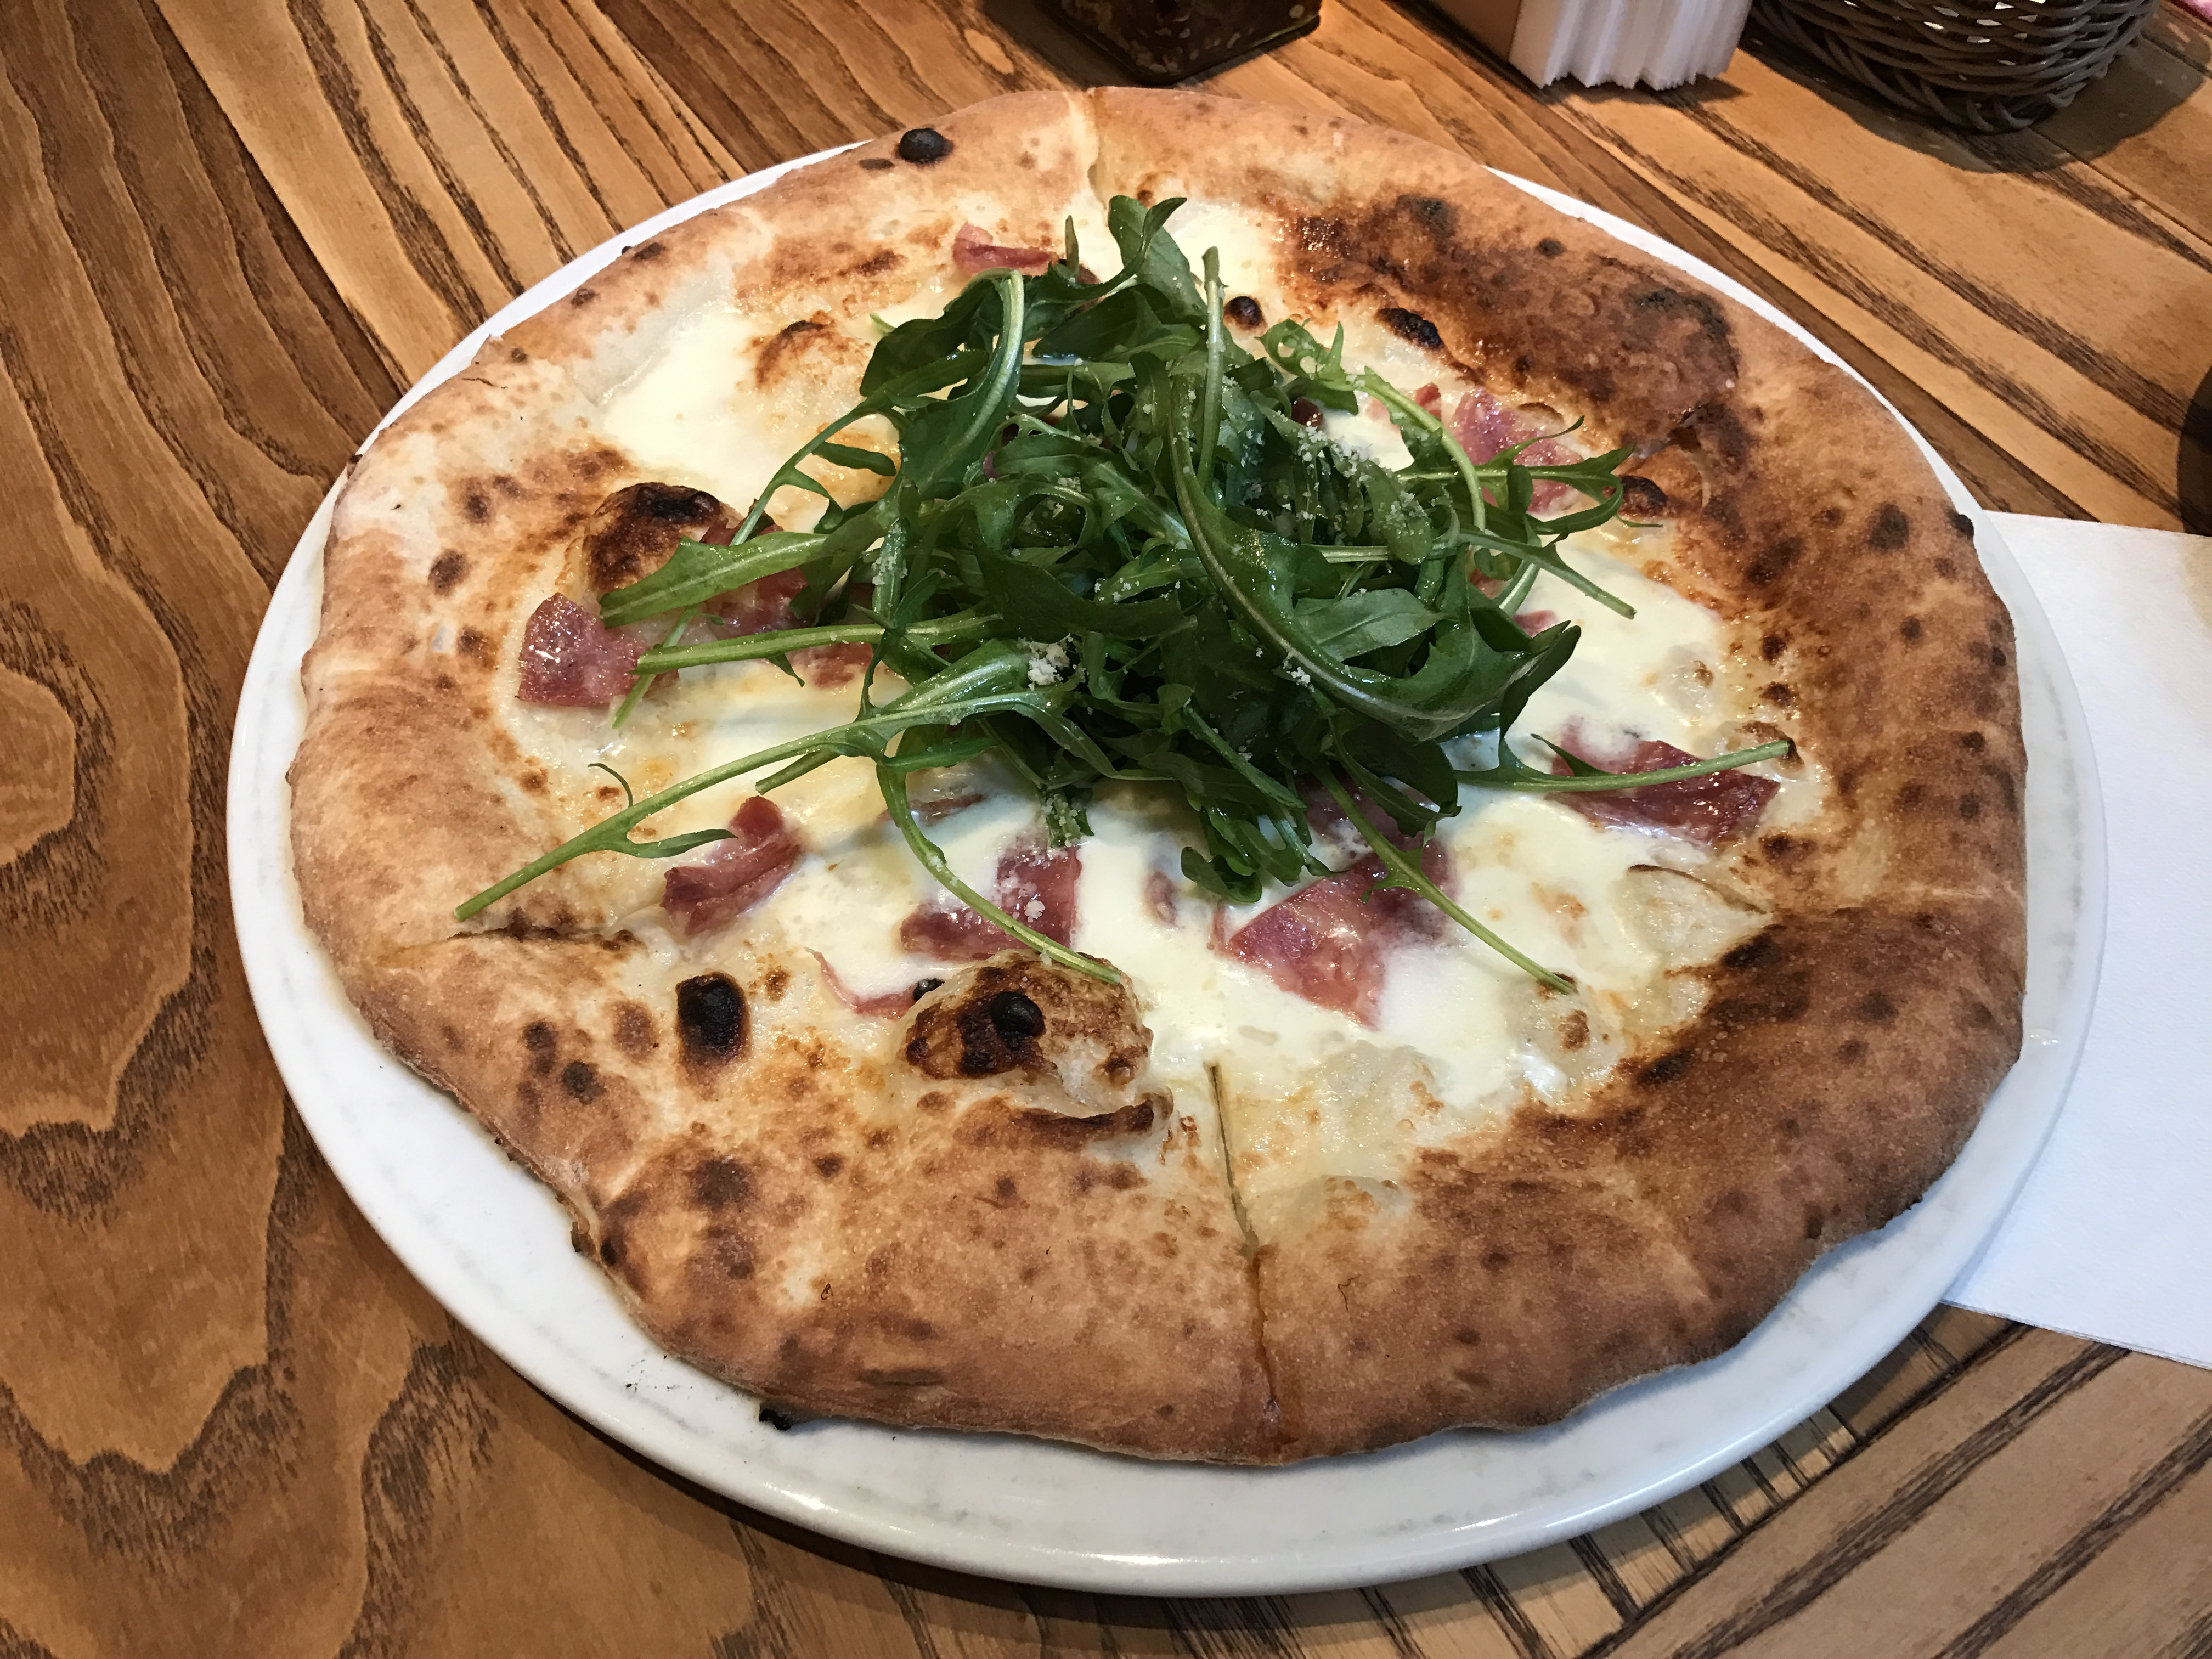 The most delicious pizza at Del Sole baked in wood fire oven Photo: Johana Shobu